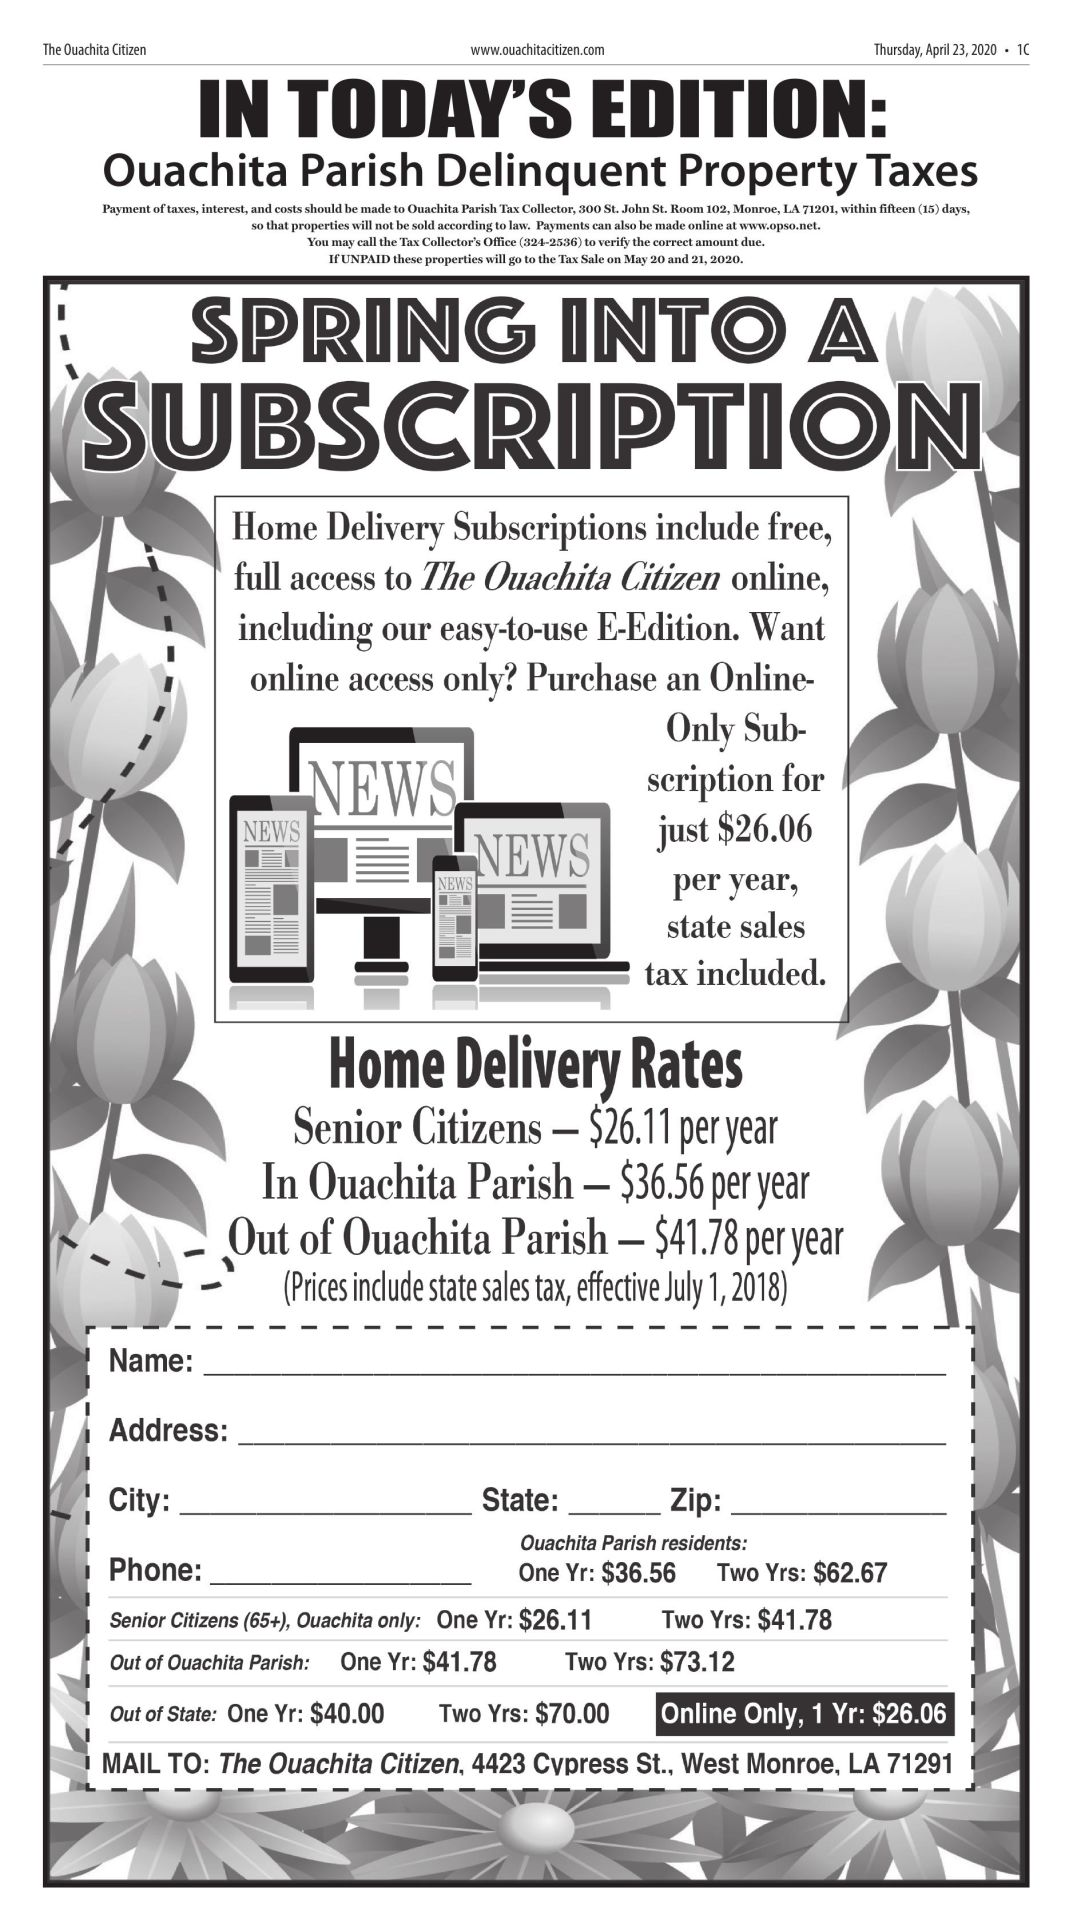 April 23, 2020 Ouachita Parish Delinquent Taxes, click to download pages